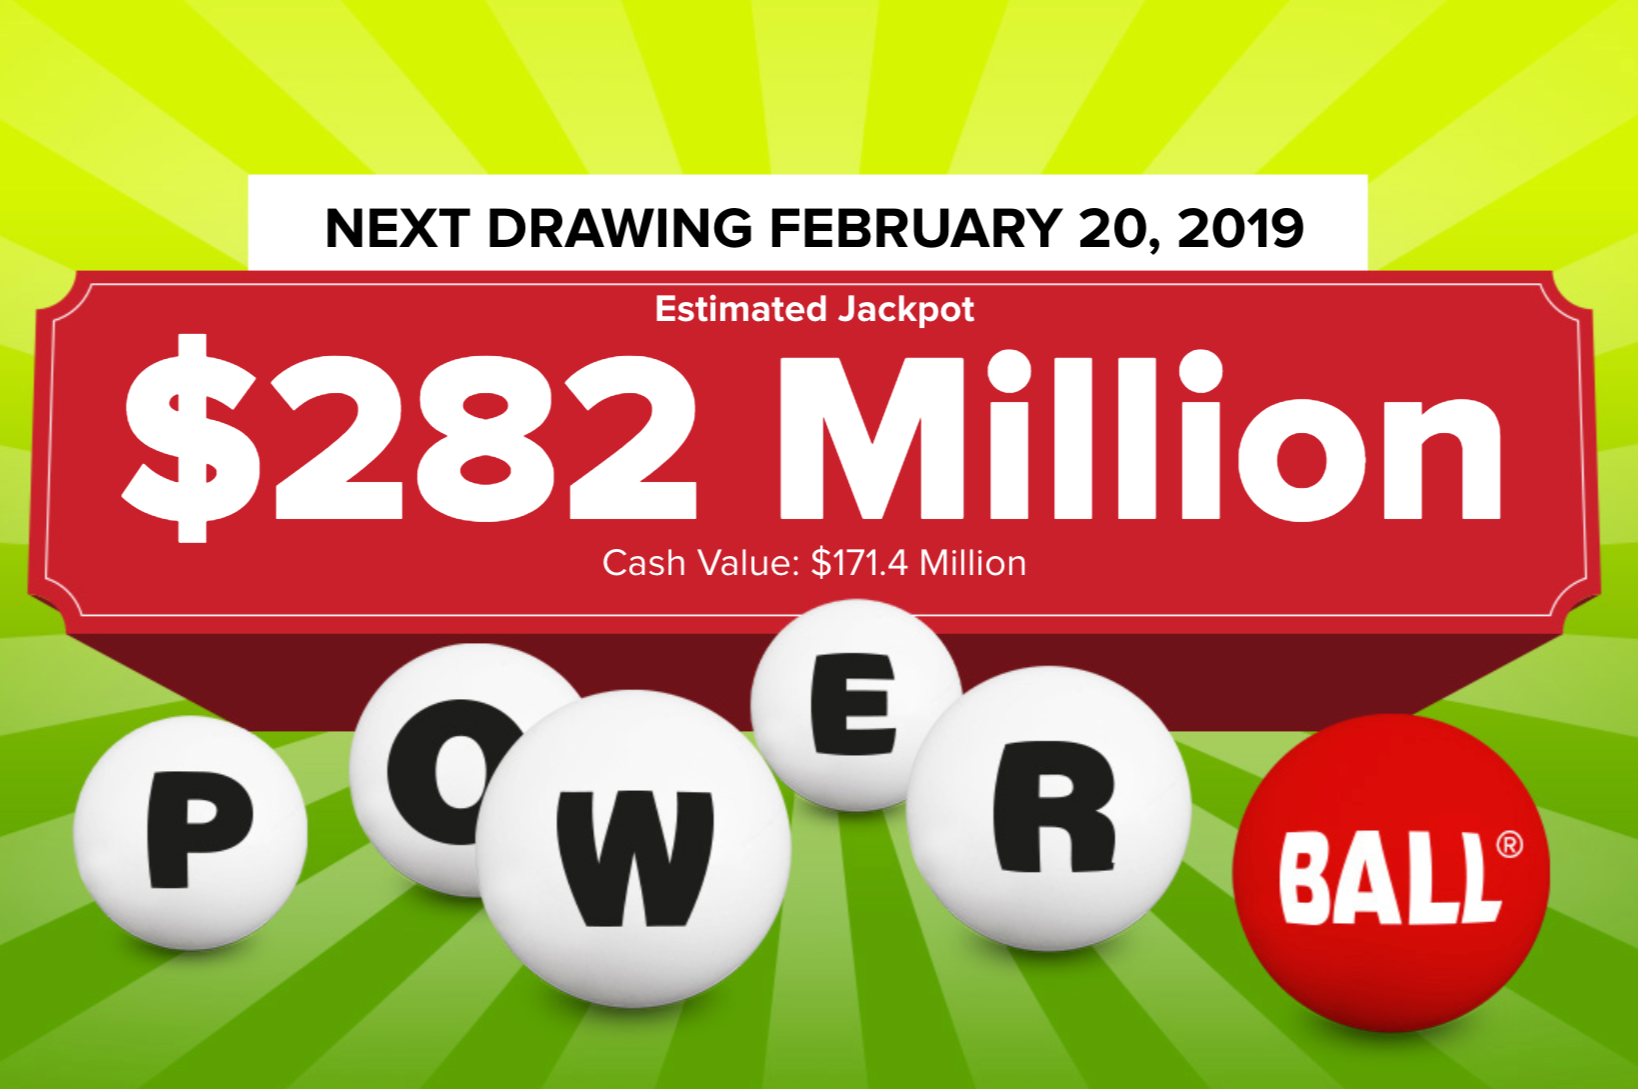 Powerball lottery ticket worth $1M sold in N.J. as jackpot climbs to $282M